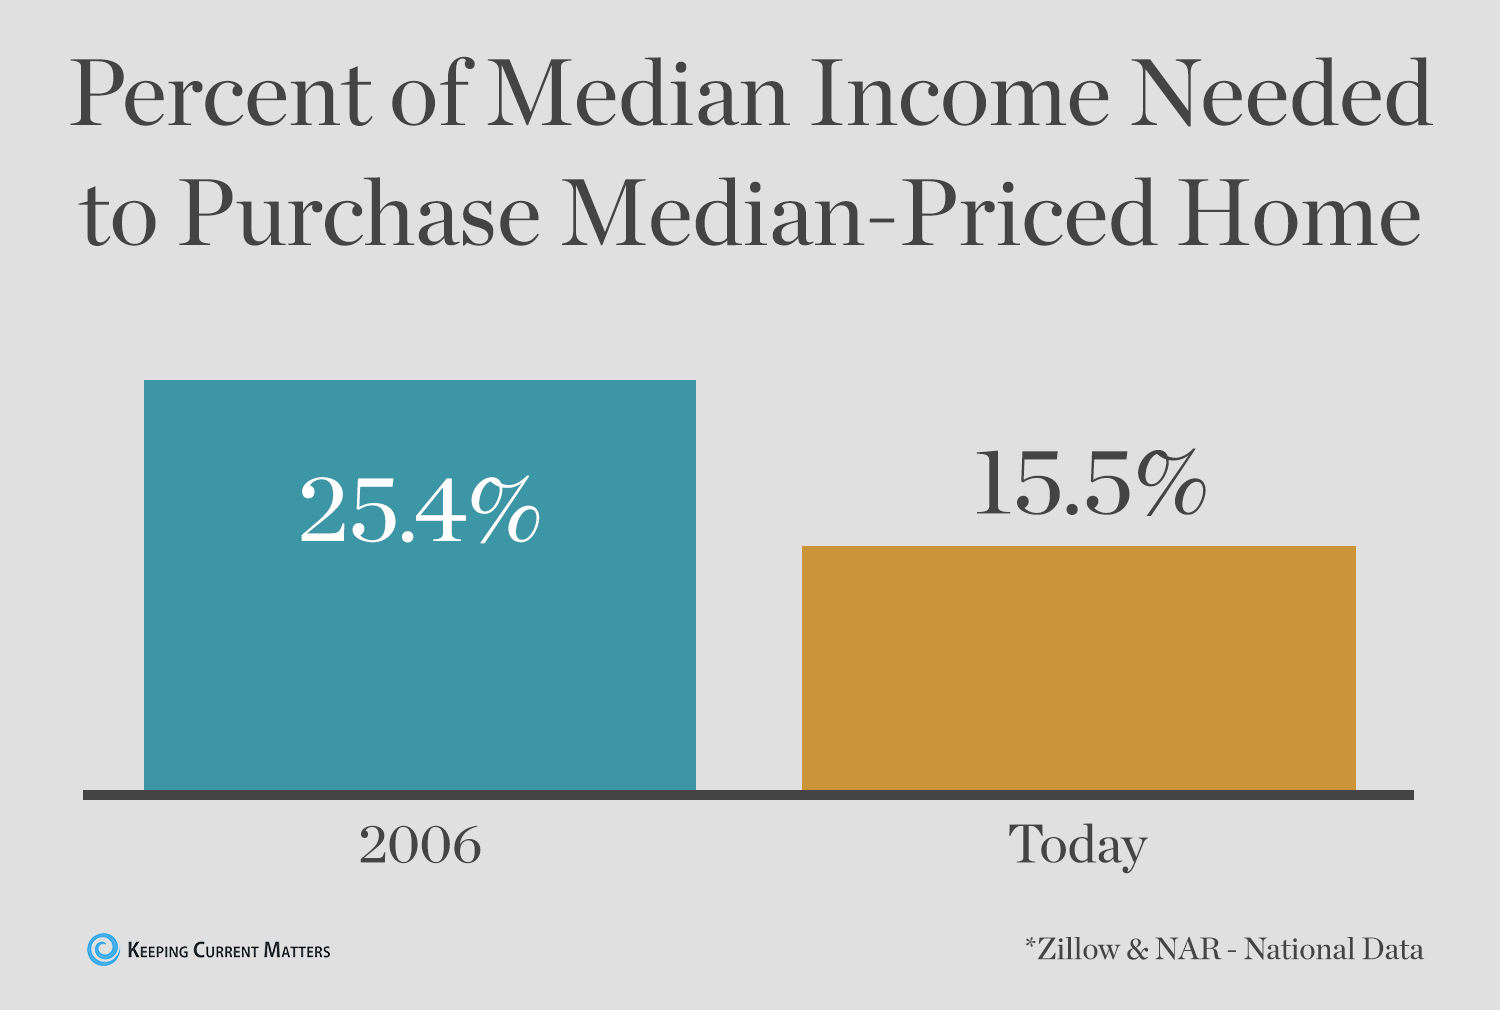 Percent of Median Income